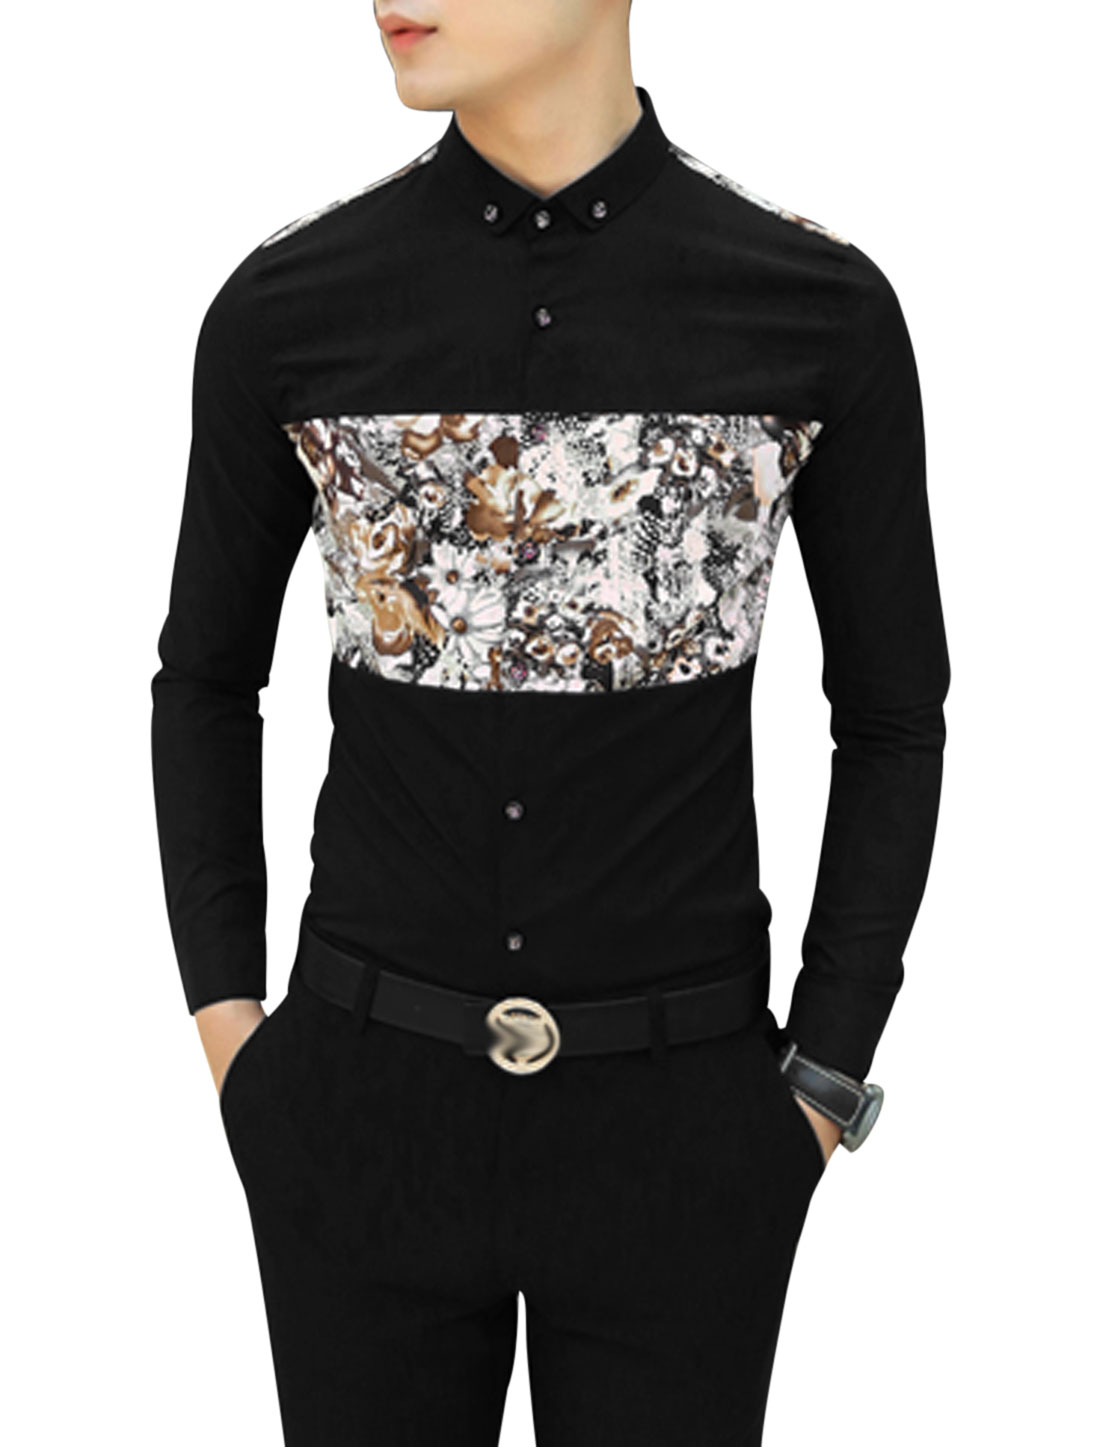 Men Black Long Sleeves Point Collar Button Closure Slim Fit Casual Shirt S